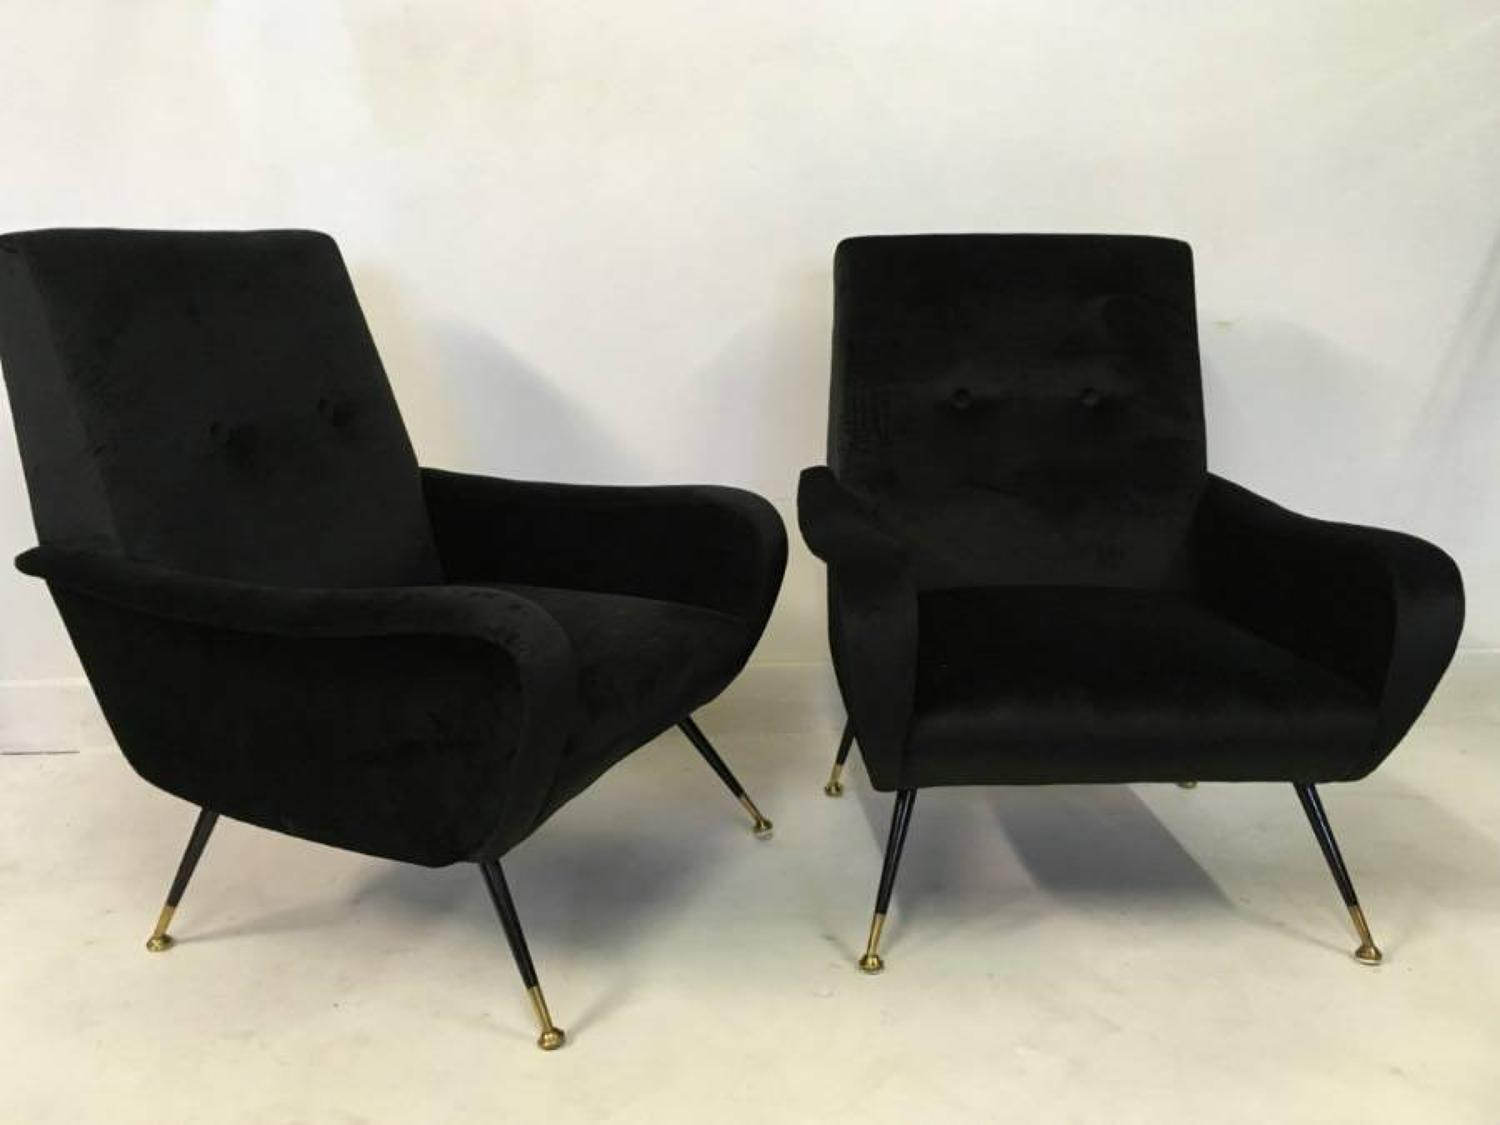 A pair of Italian armchairs in black